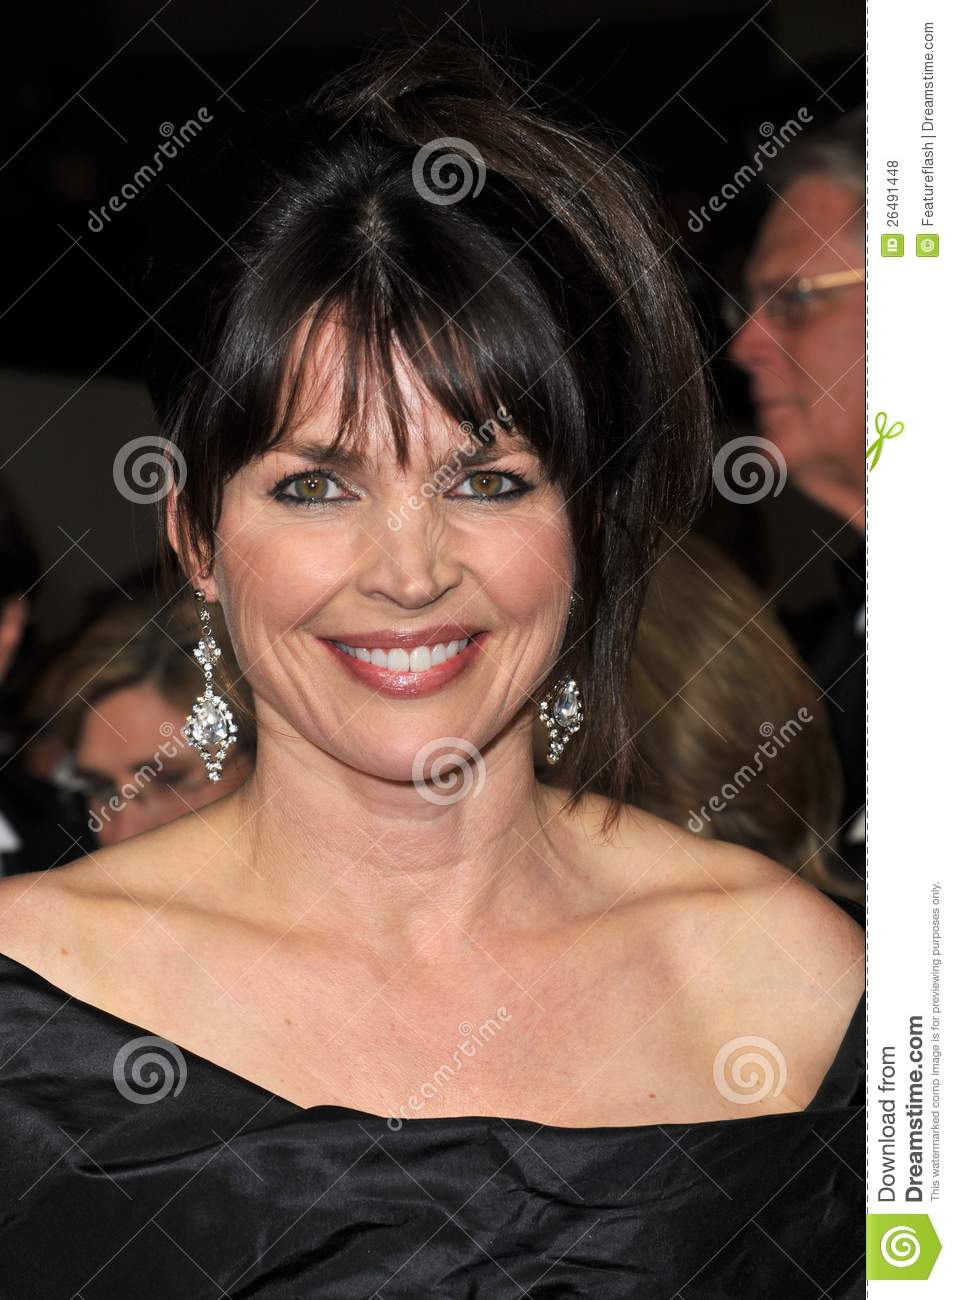 Julia Ormond Immagini julia ormond fotografia stock editoriale. immagine di grande